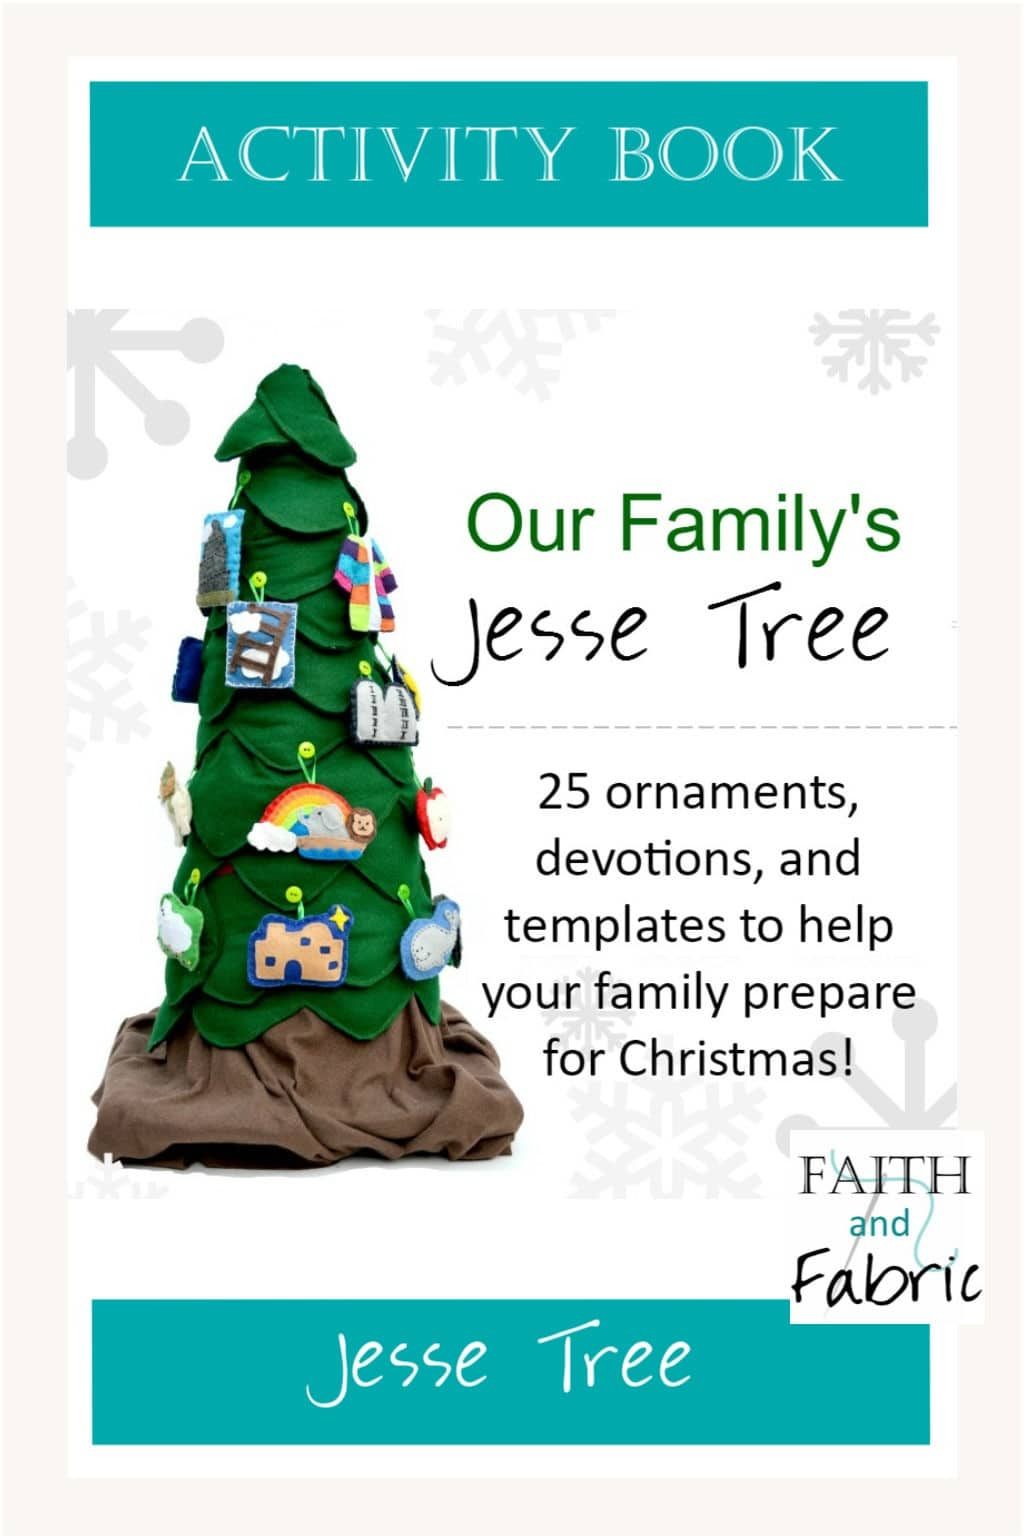 Our Family's Jesse Tree: 25 ornaments, devotions, and games to help your family prepare during Advent!